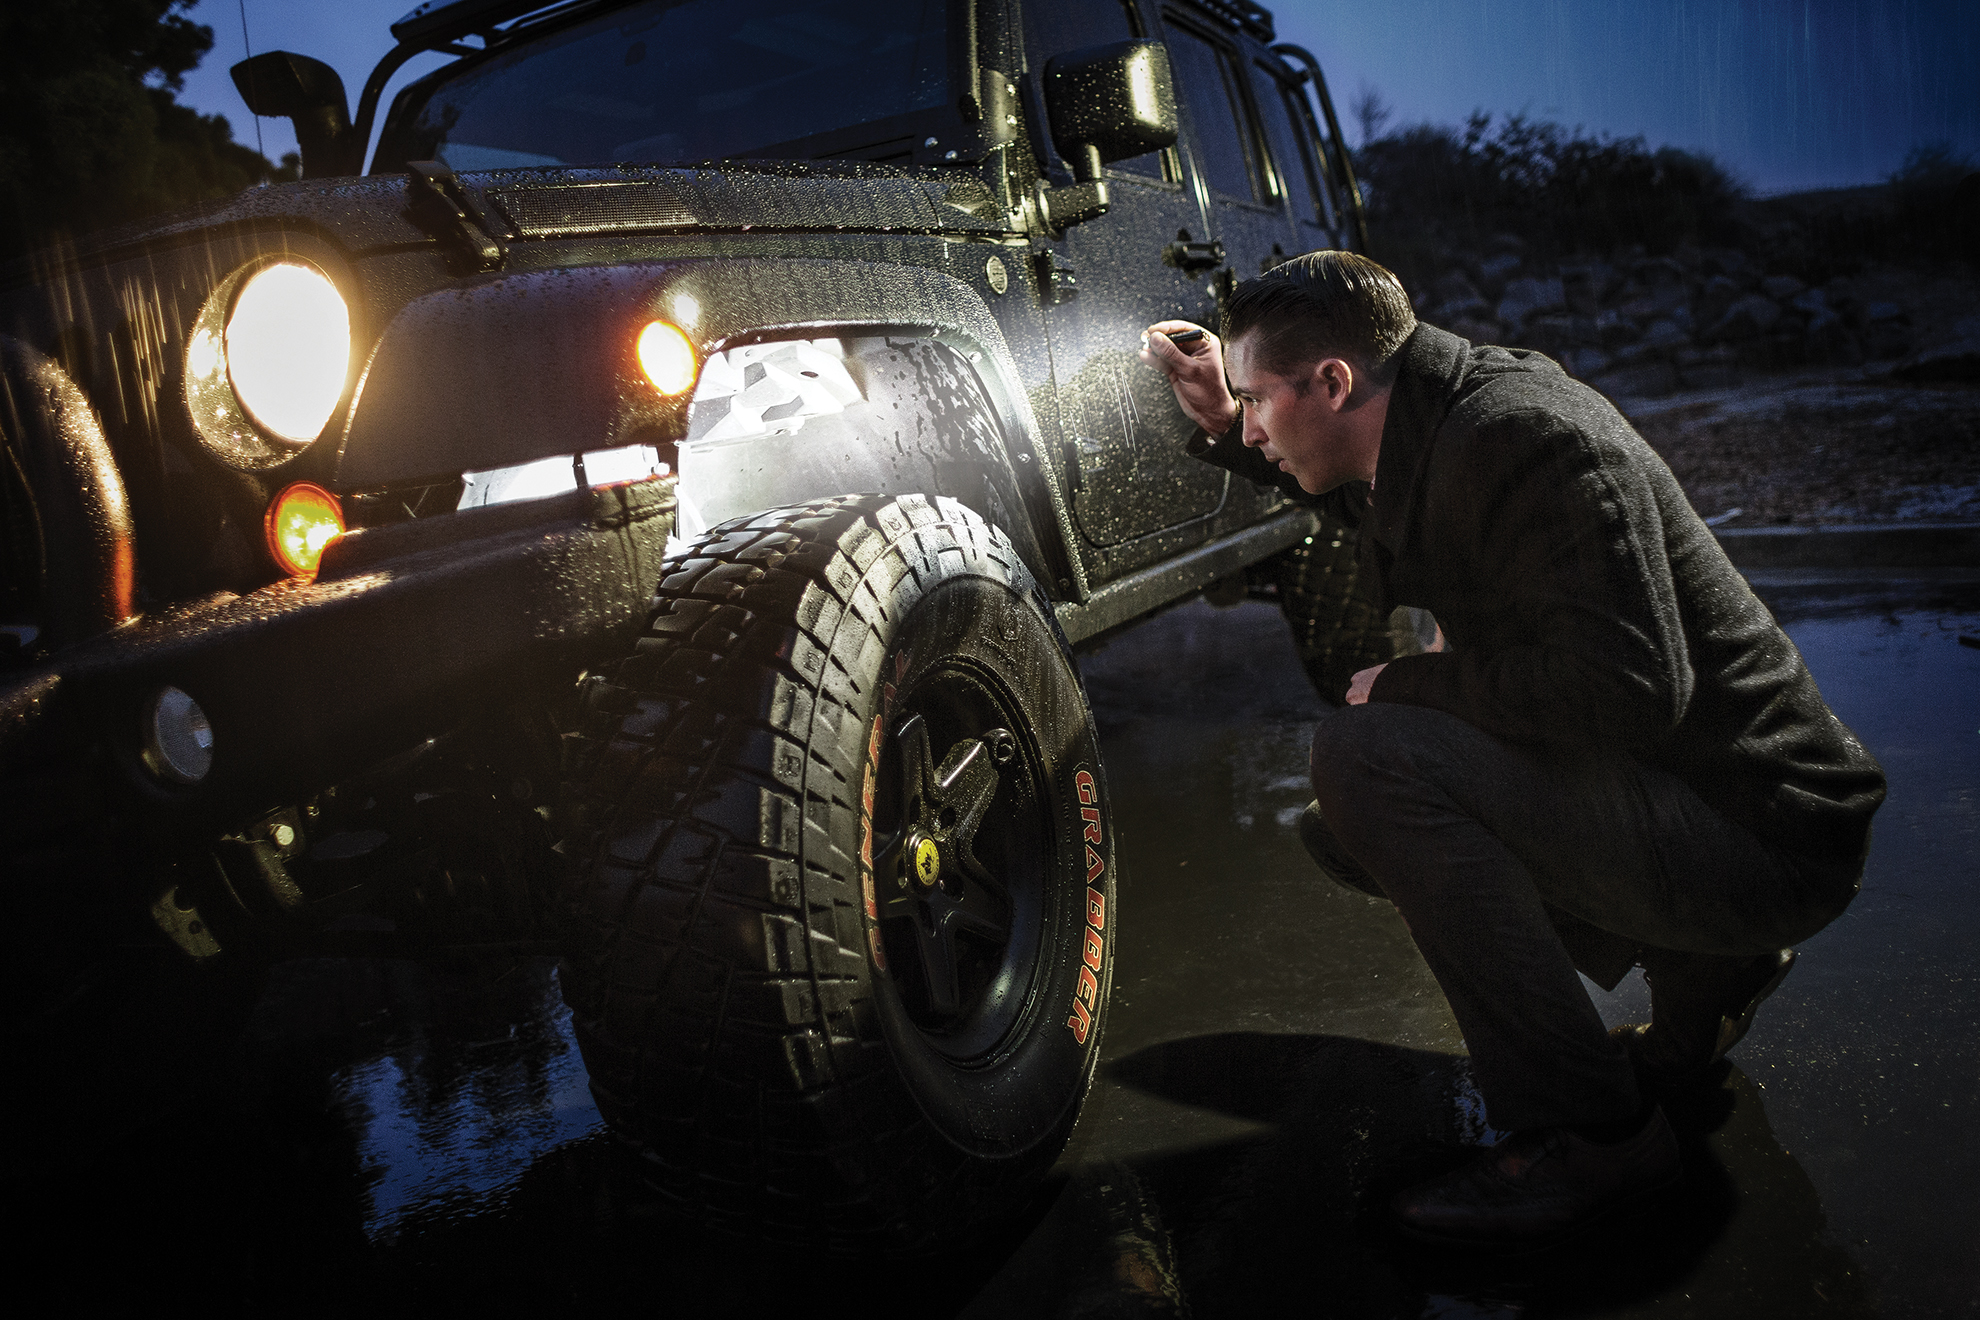 SureFire Titan keychain flashlight troubleshooting Jeep